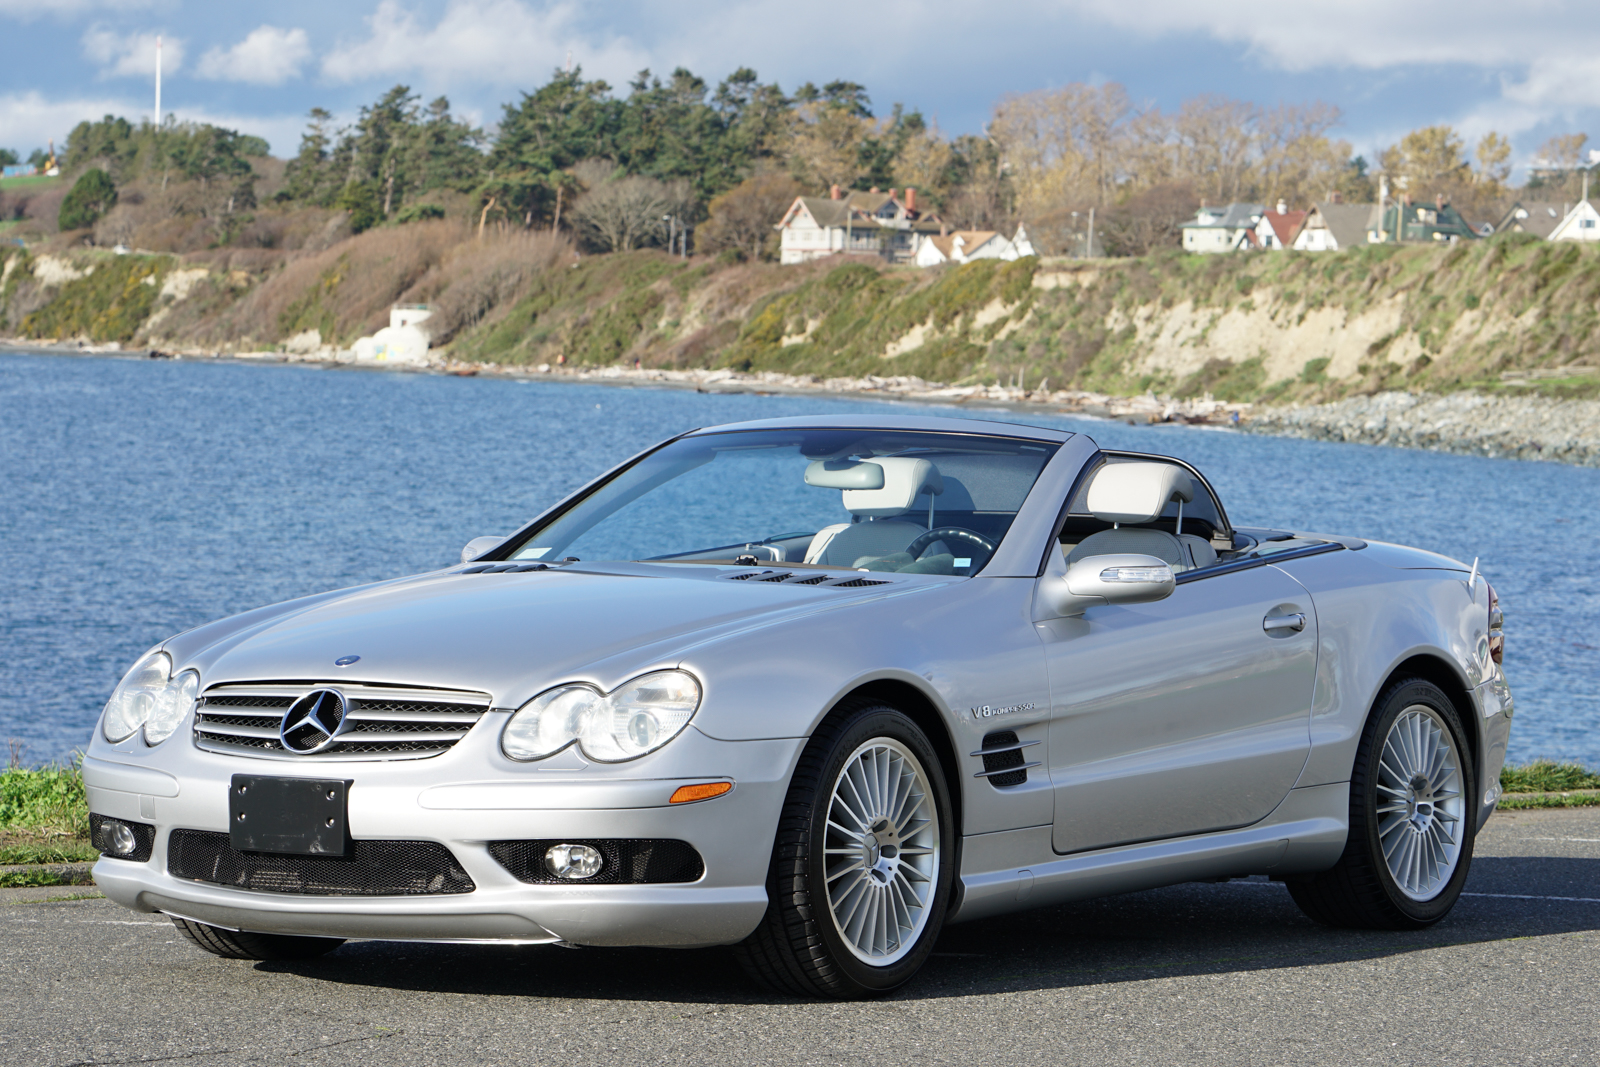 2004 mercedes benz sl55 amg silver arrow cars ltd for Cars of mercedes benz